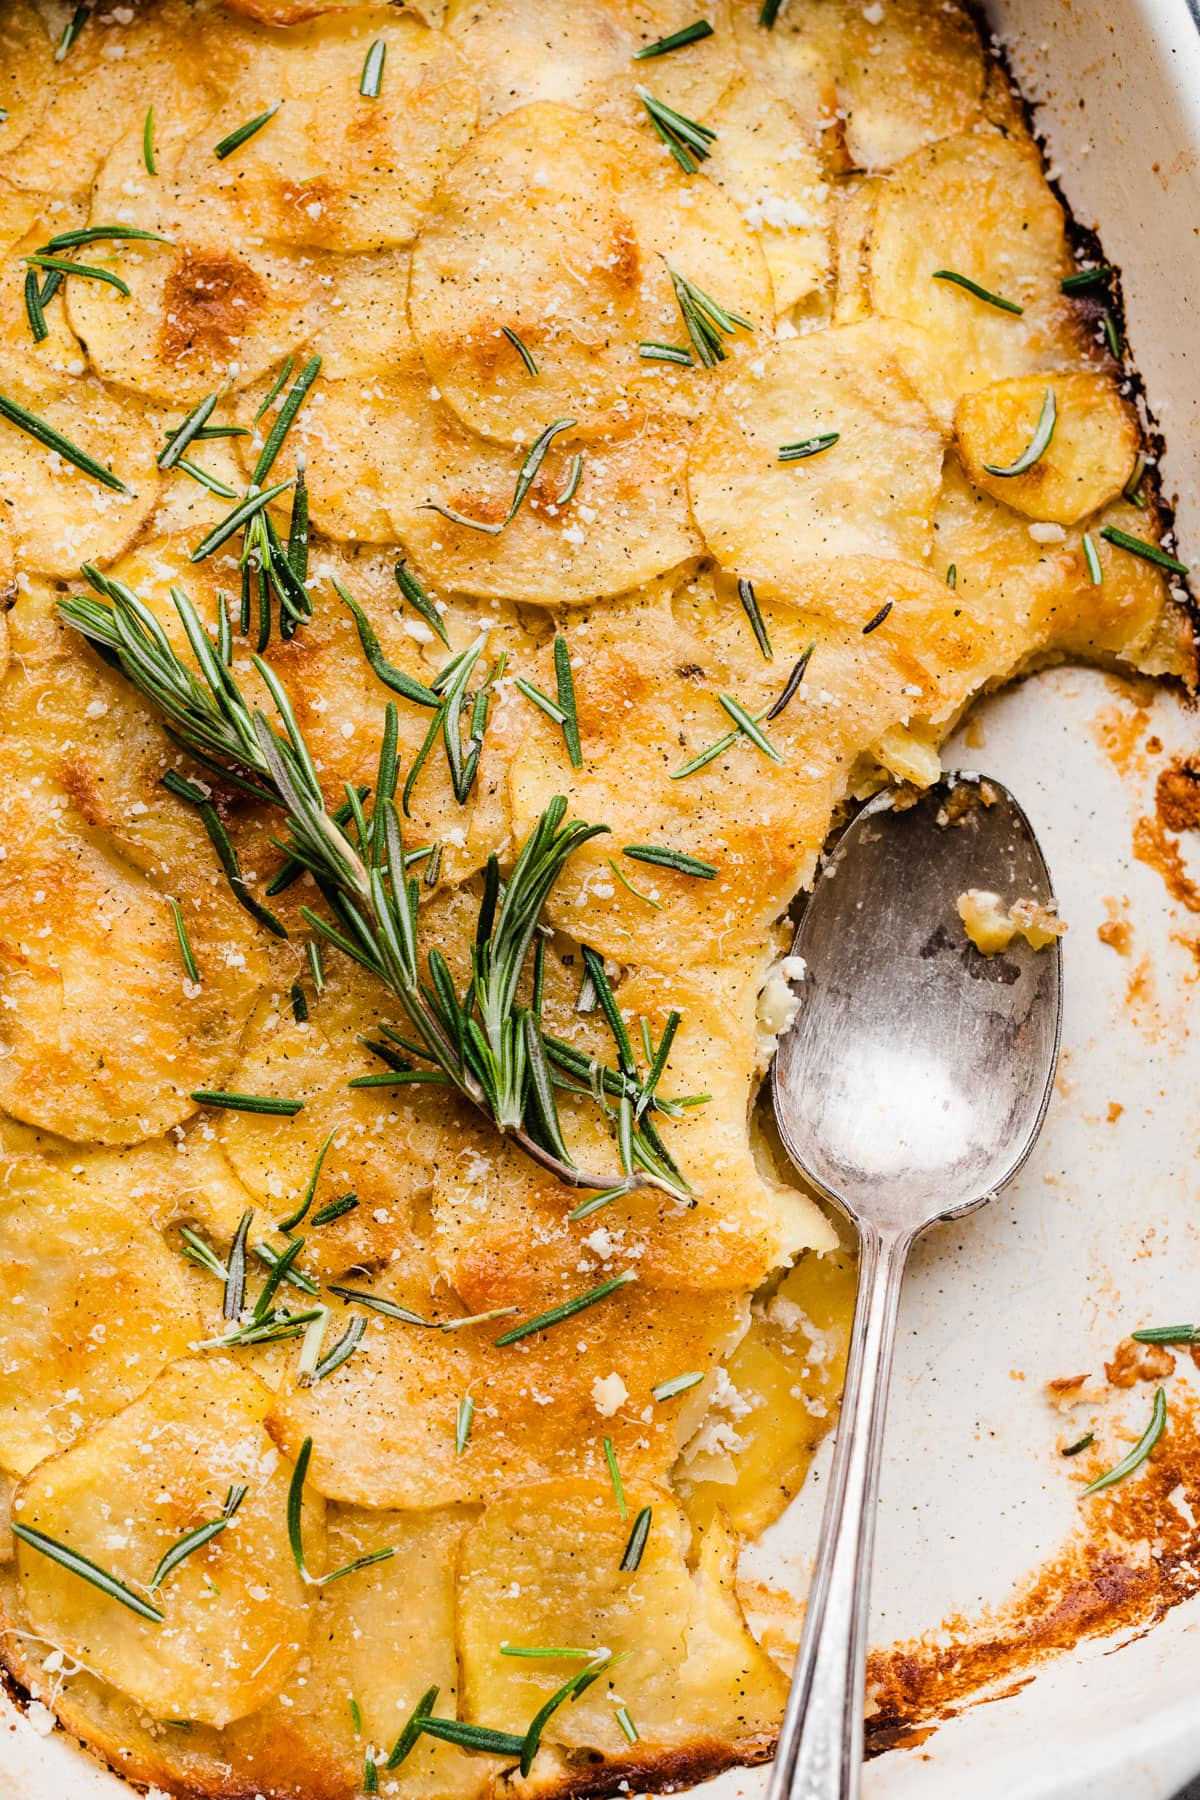 Garlic, goat cheese, and fresh herbs on a cutting board